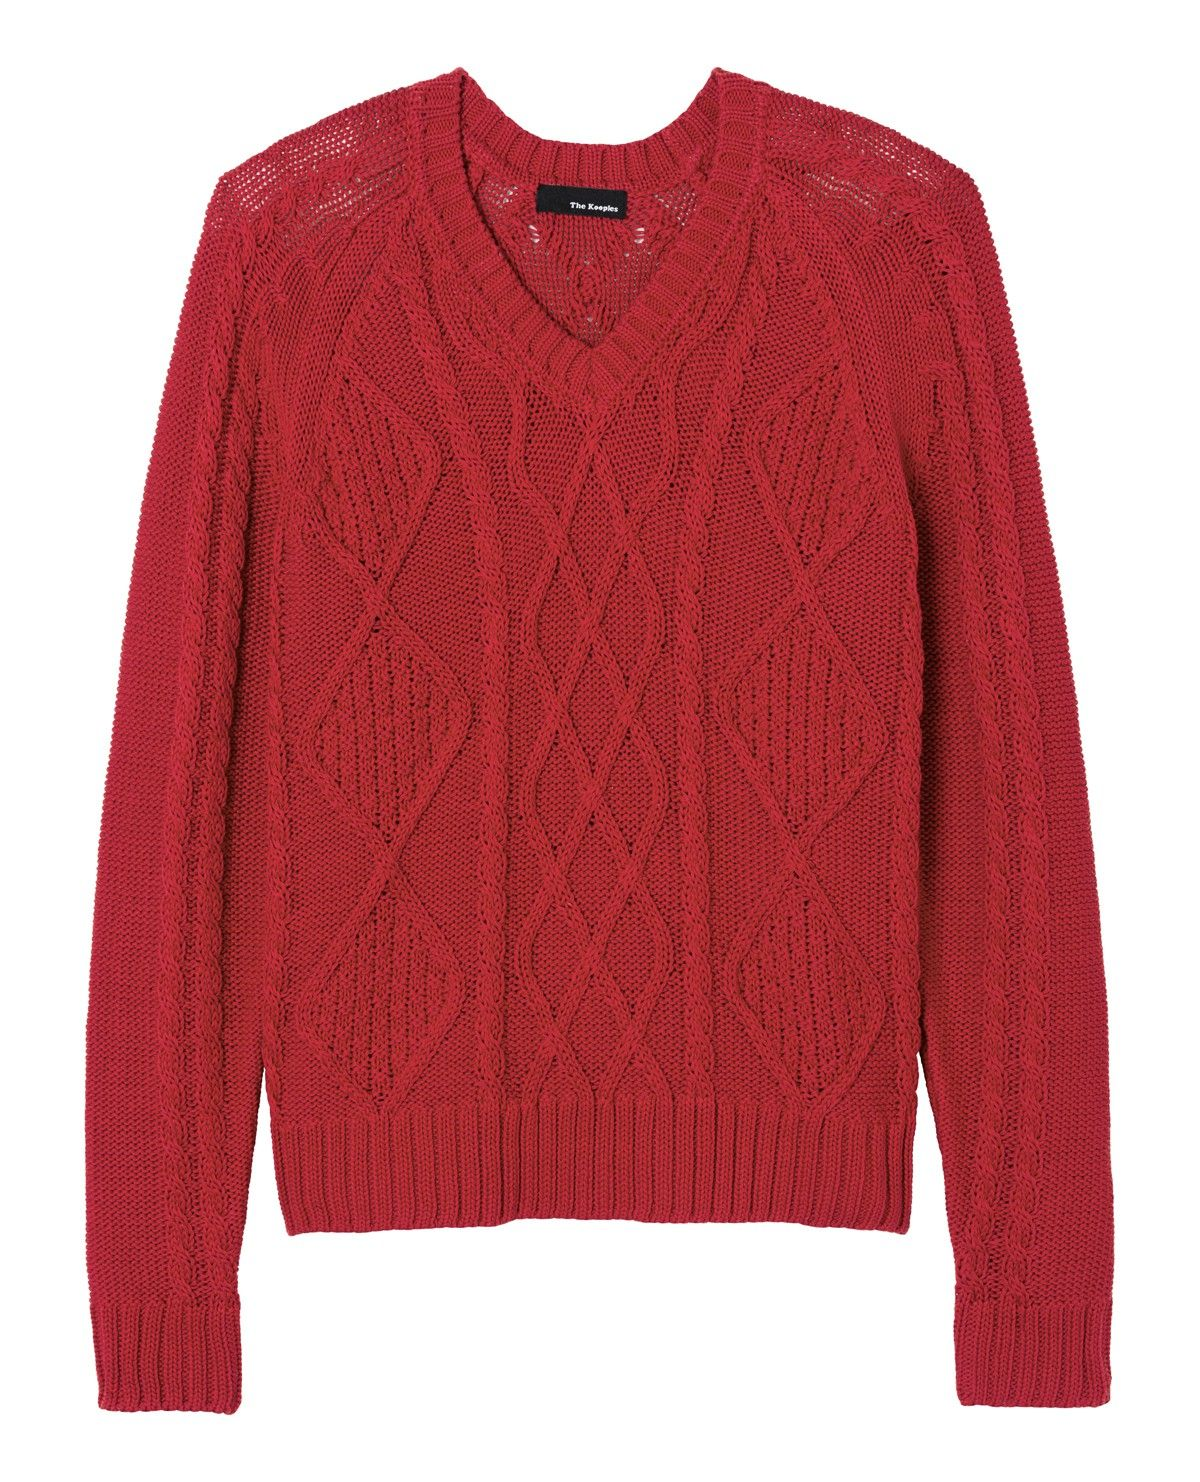 bb0f06d2ea7 Cable-knit sweater in mercerised cotton - Man - Final Sale - The ...